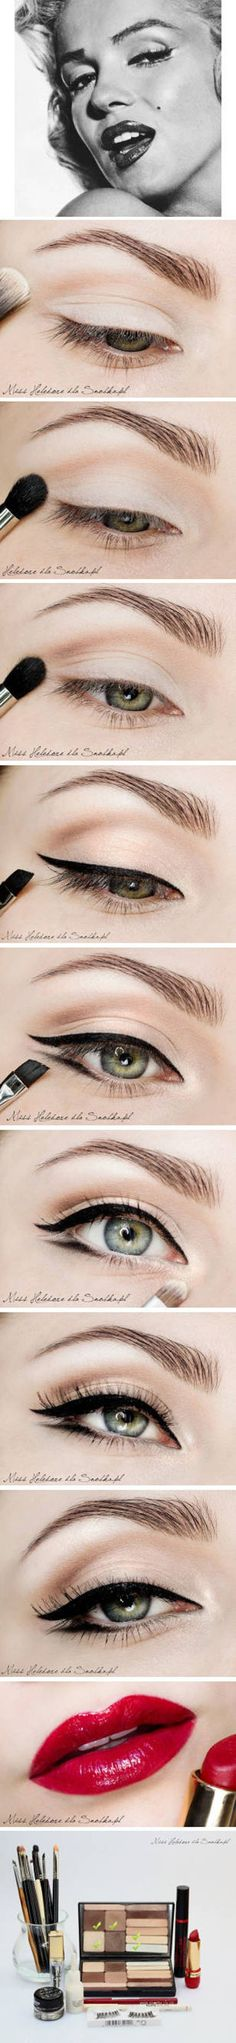 Gorgeous Double Wing Eye Shadow Tutorial #makeup #eyeshadow